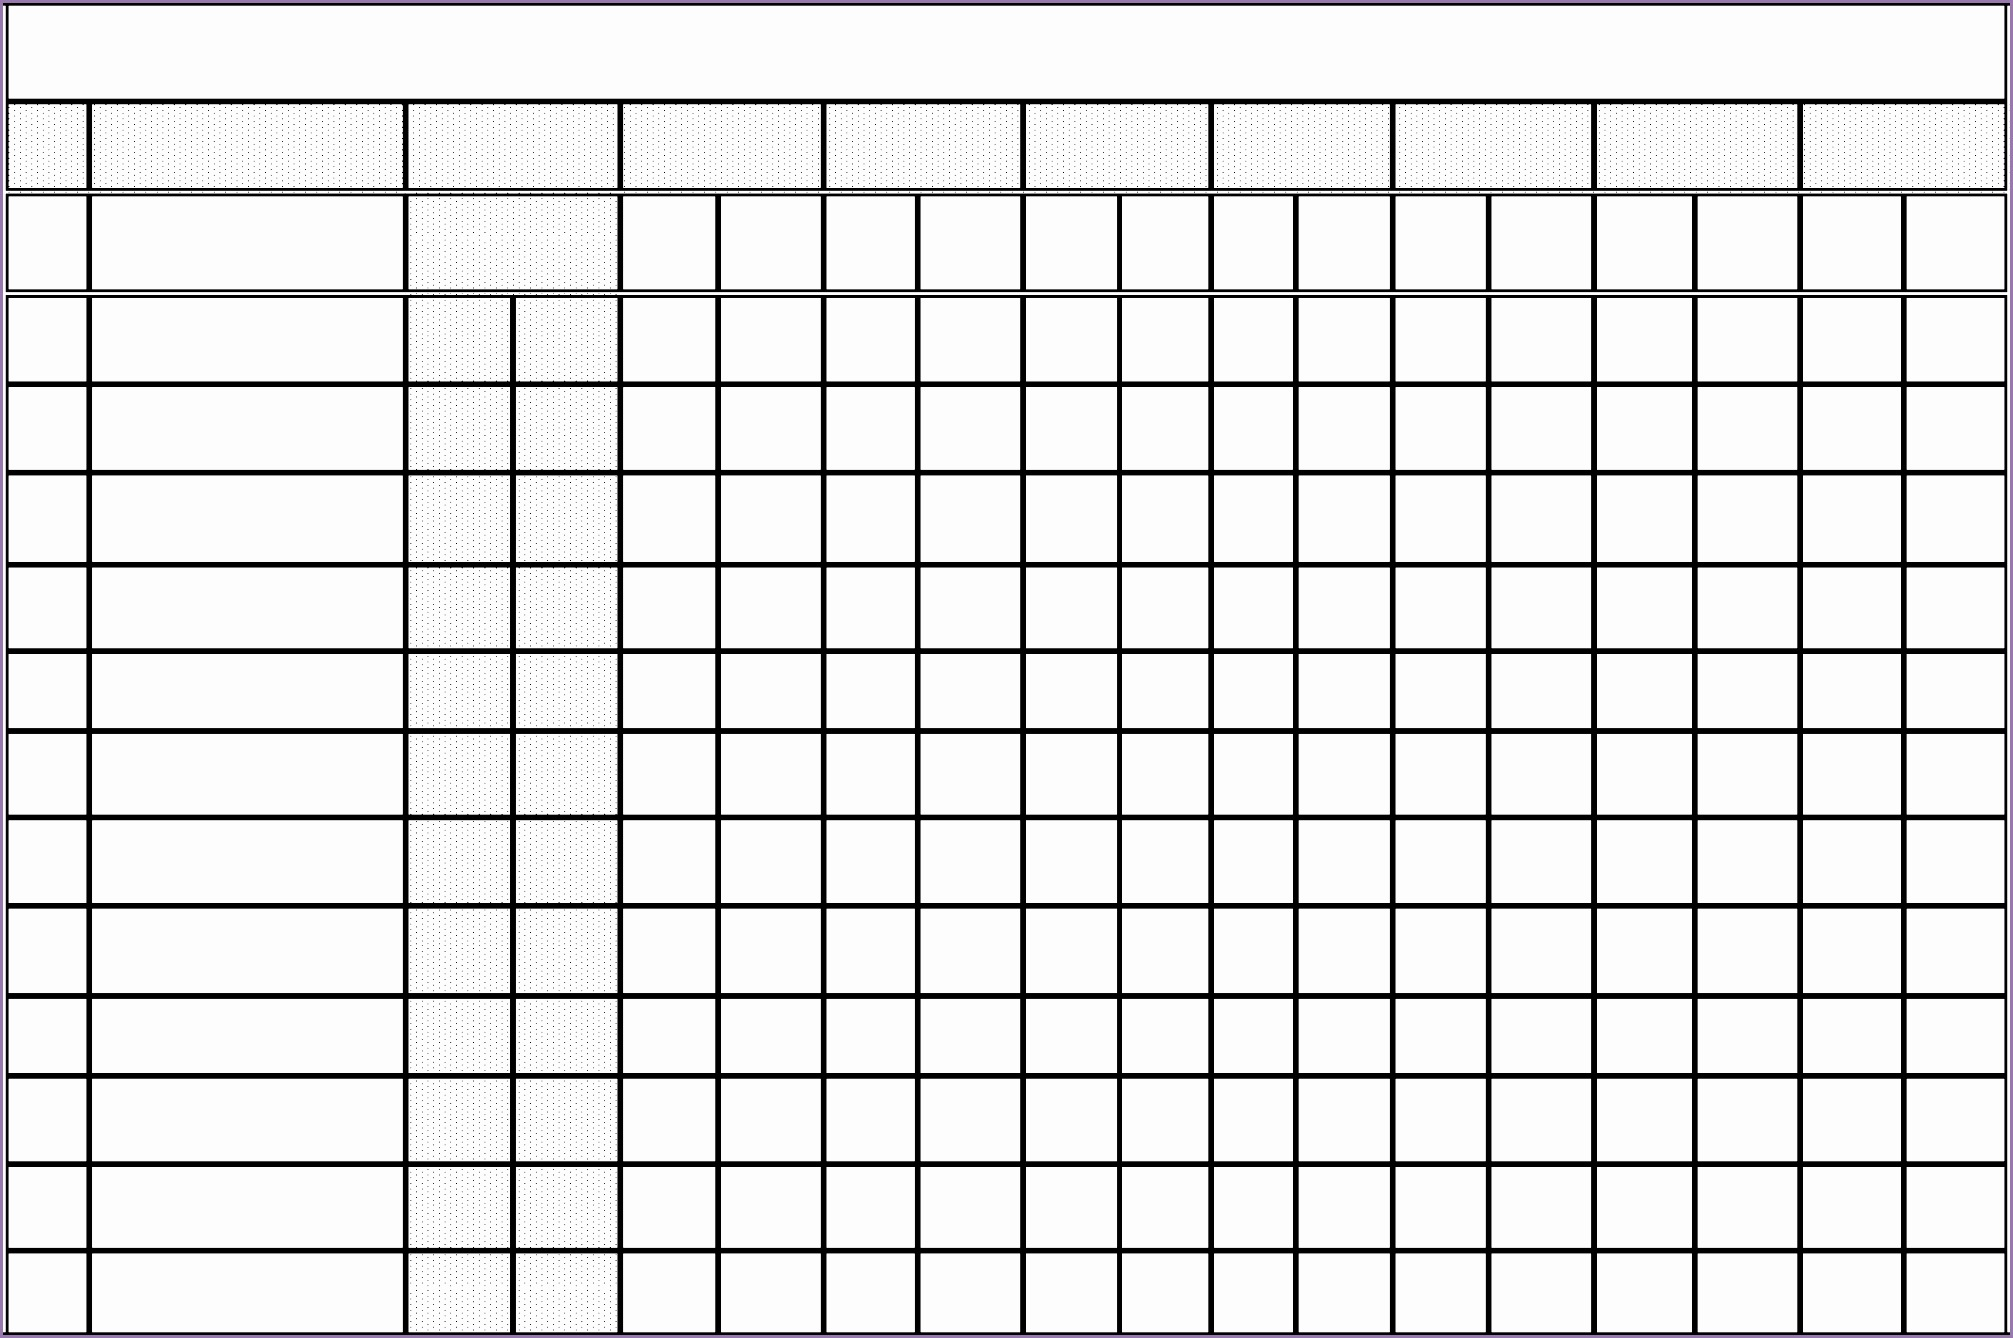 free blank workout chart template